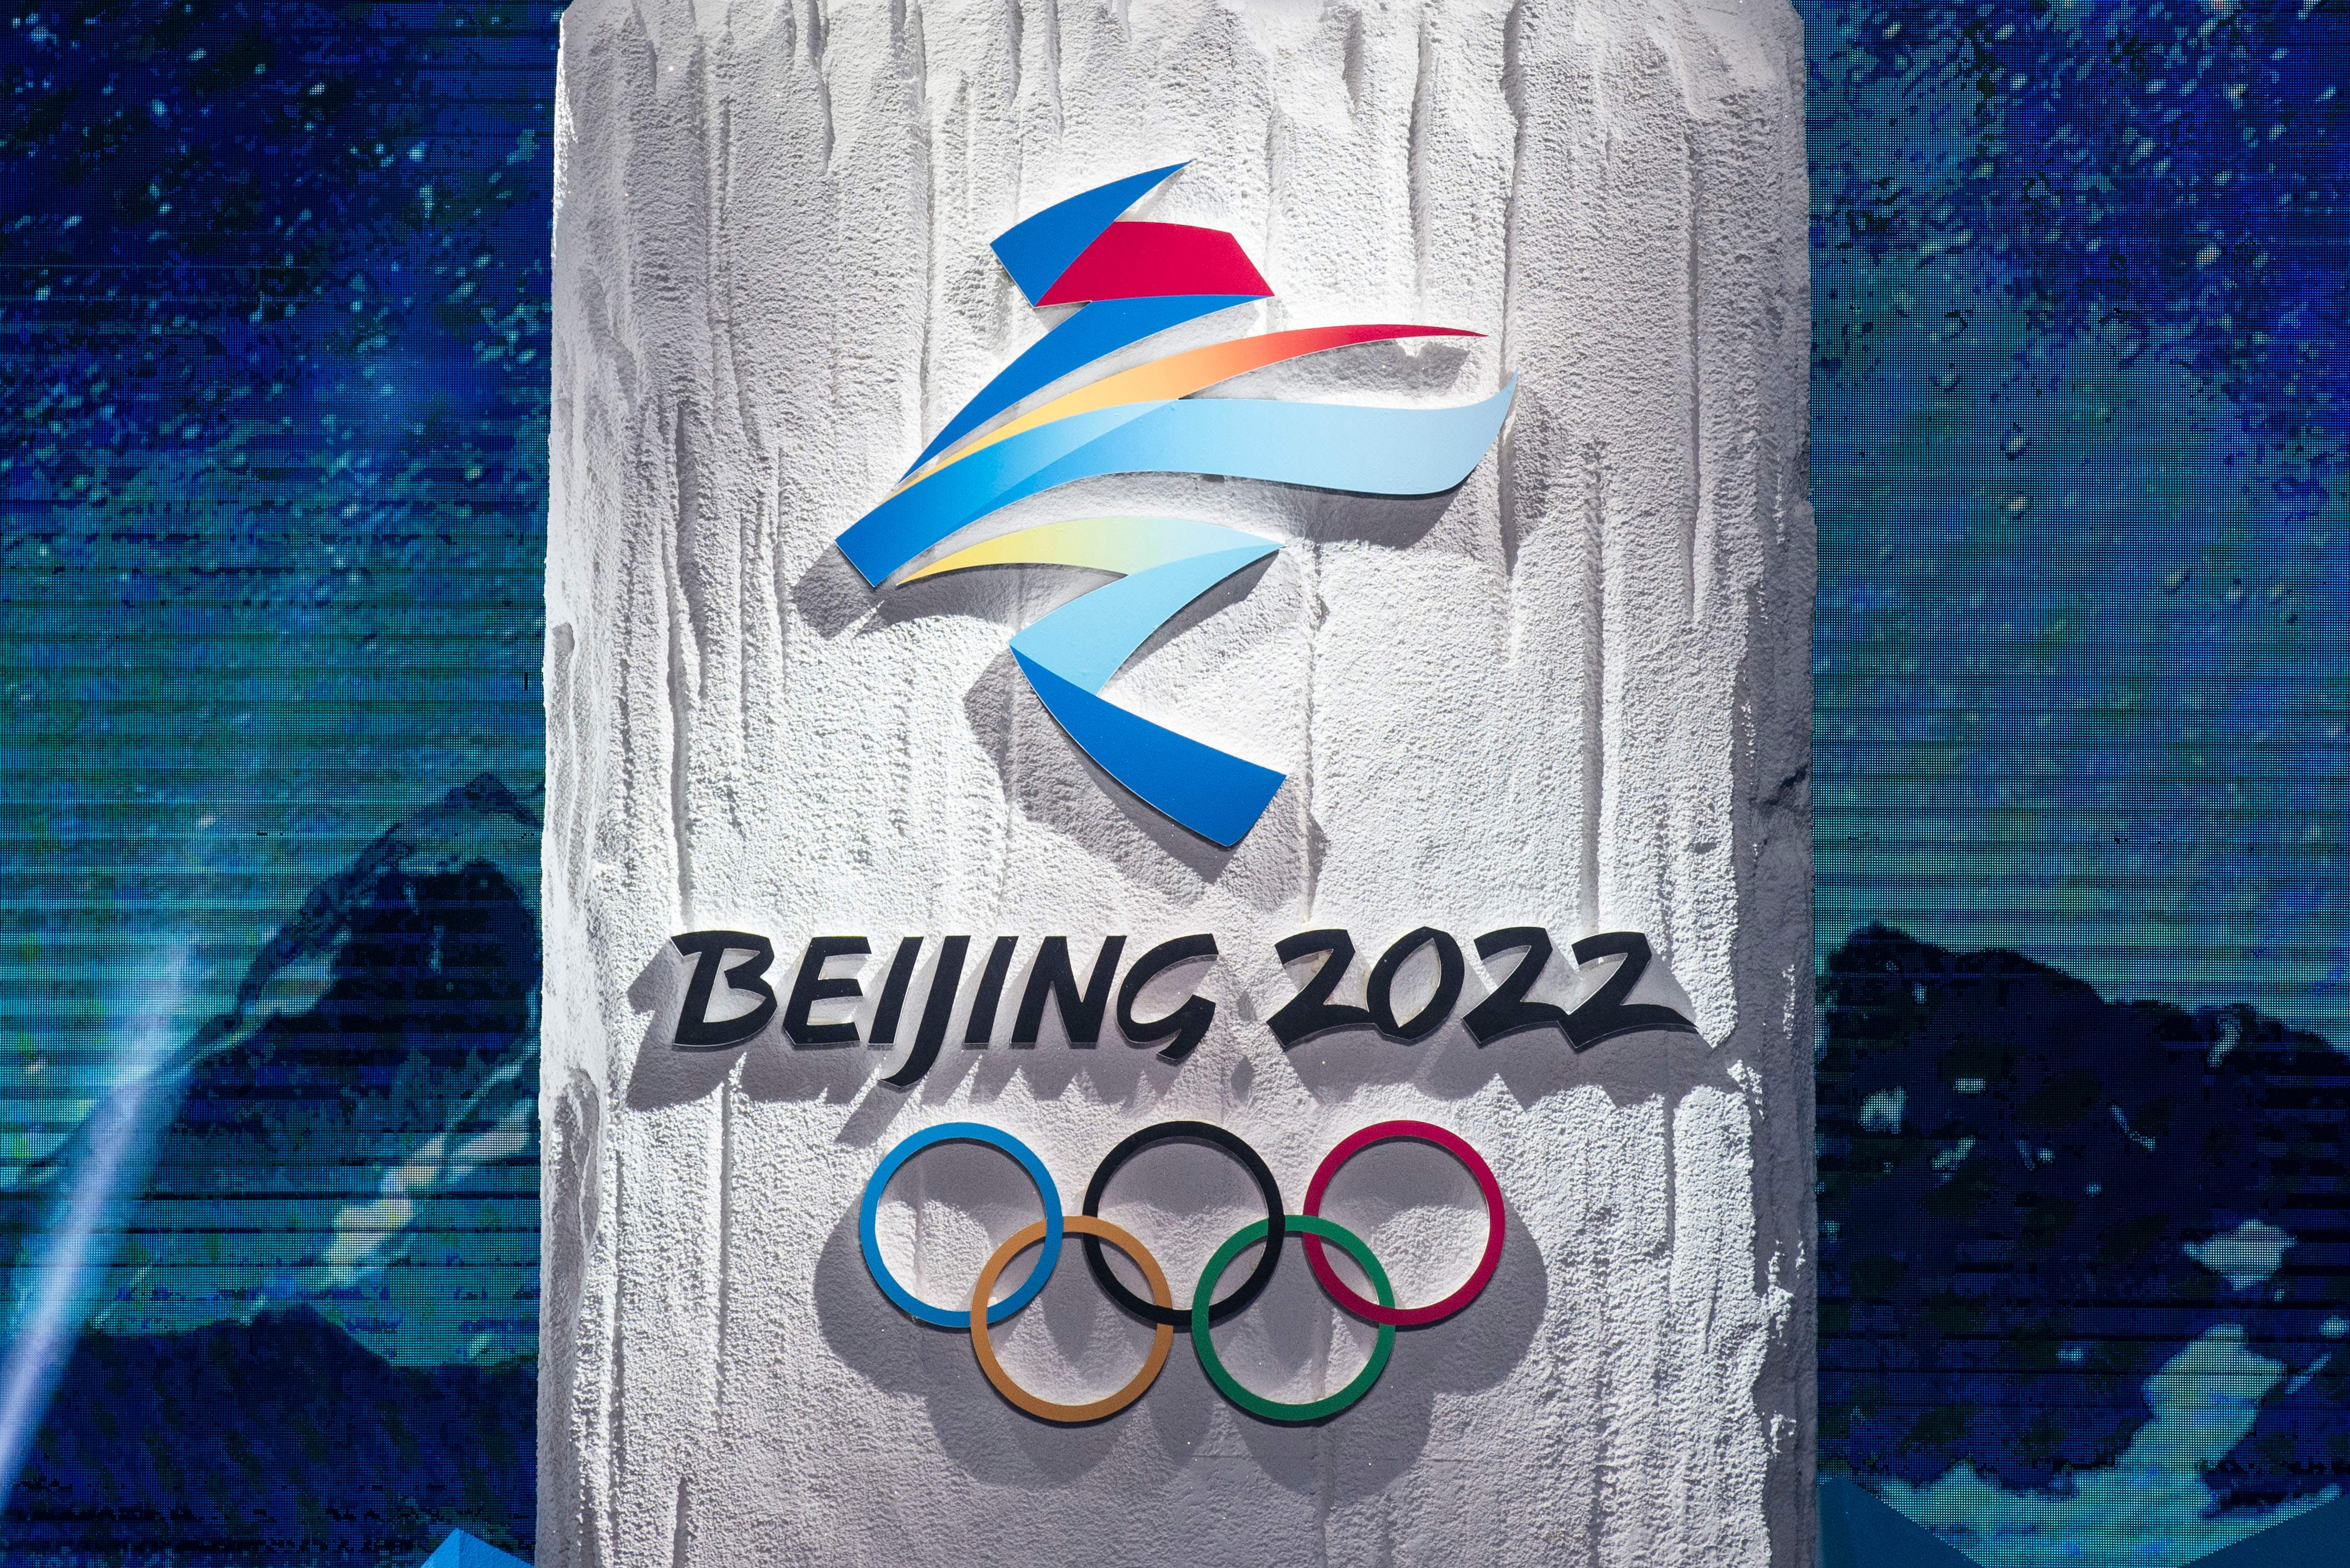 Winter Olympics 2022 in Beijing: When, Where, What to Know   Time